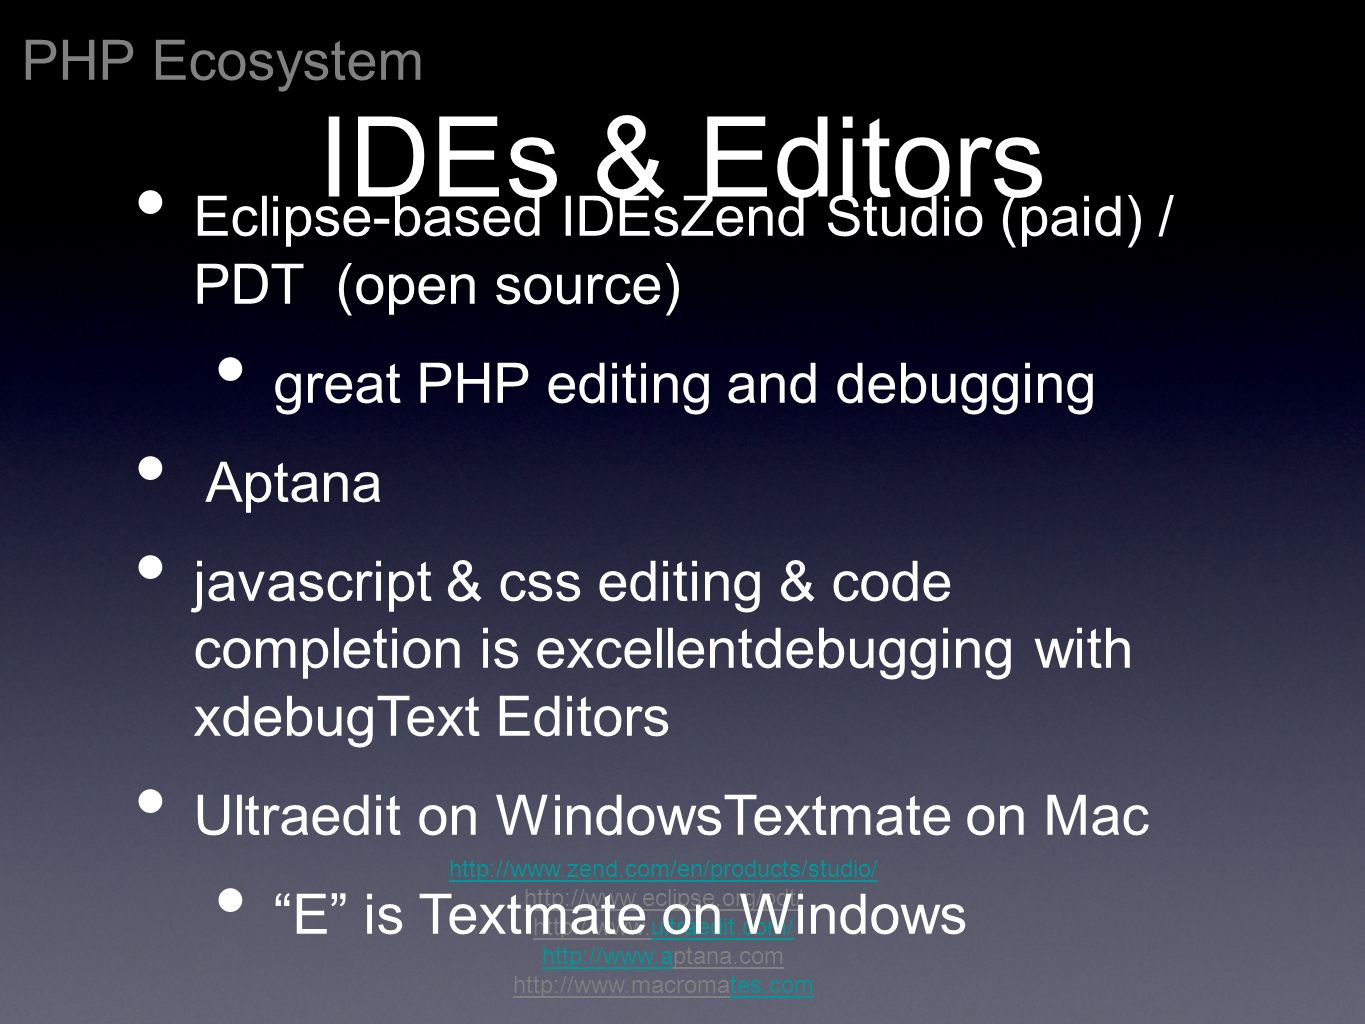 PHP Ecosystem http://www.zend.com/en/products/studio/ http://www.eclipse.org/pdt/ http://www.ultraedit.com/ultraedit.com/ http://www.ahttp://www.aptana.com http://www.macromates.comtes.com IDEs & Editors Eclipse-based IDEsZend Studio (paid) / PDT (open source) great PHP editing and debugging Aptana javascript & css editing & code completion is excellentdebugging with xdebugText Editors Ultraedit on WindowsTextmate on Mac E is Textmate on Windows